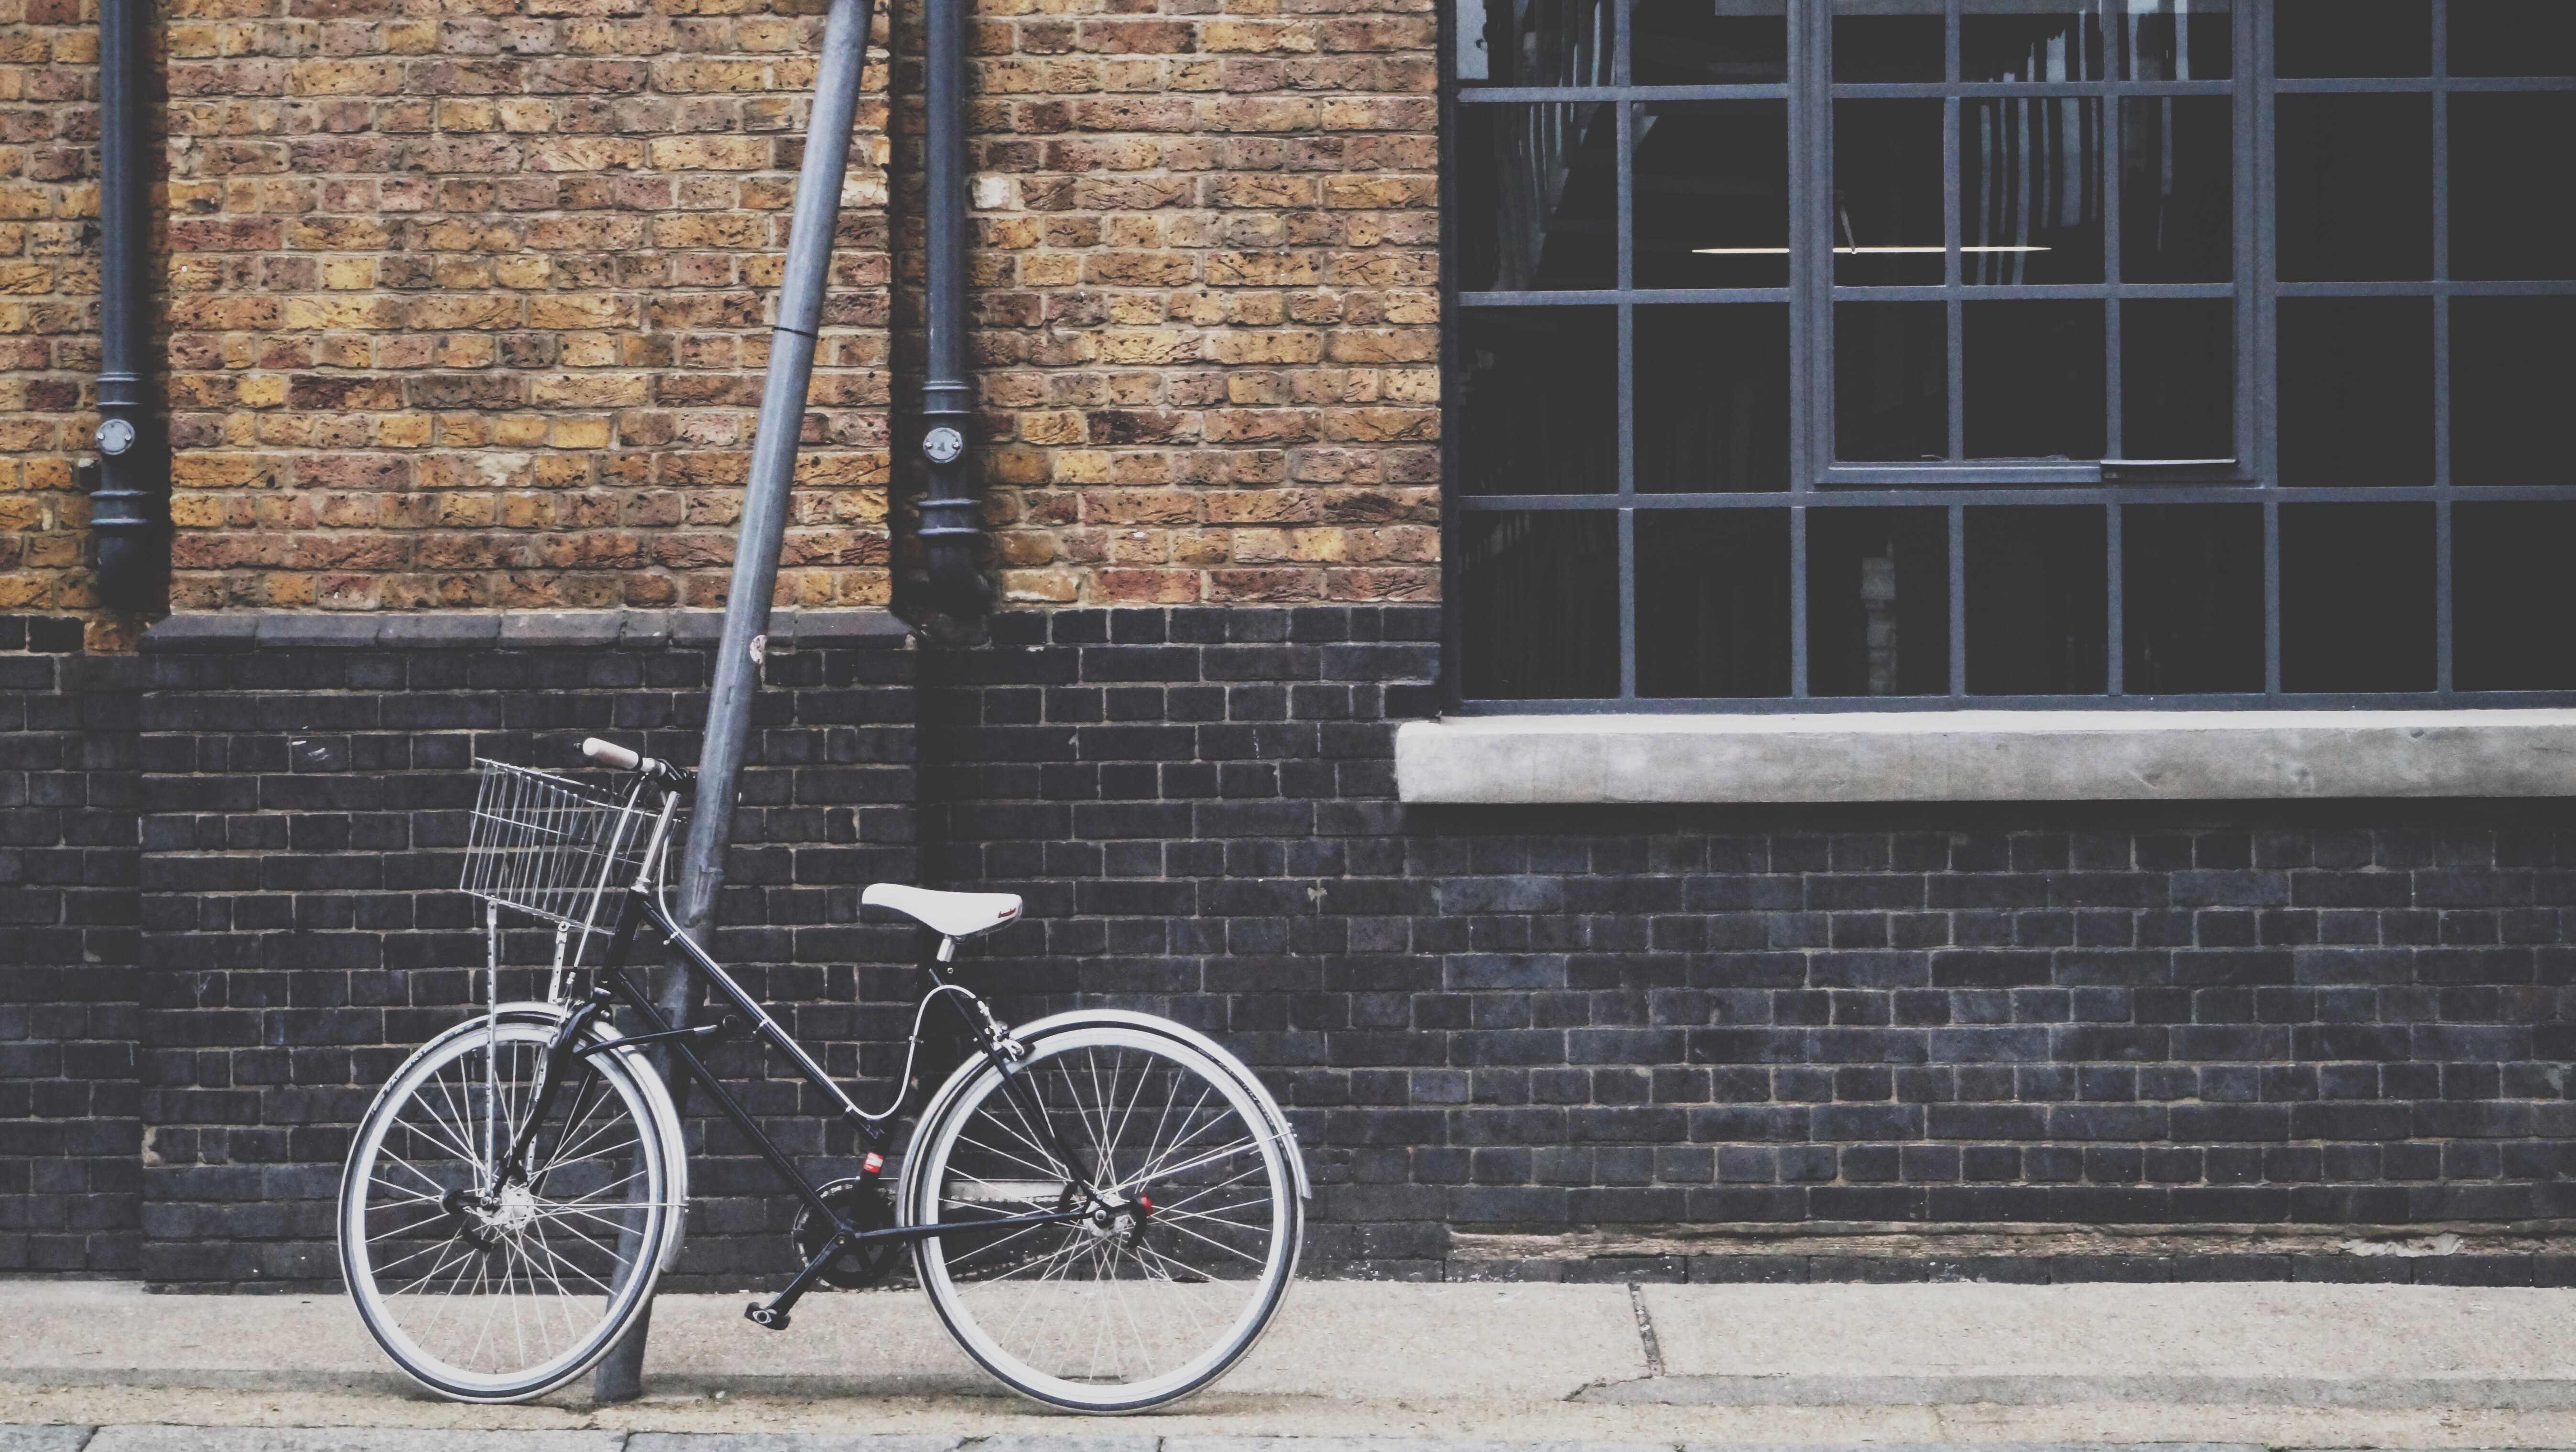 An old bicycle leans against a pole in front of a brick wall in London.